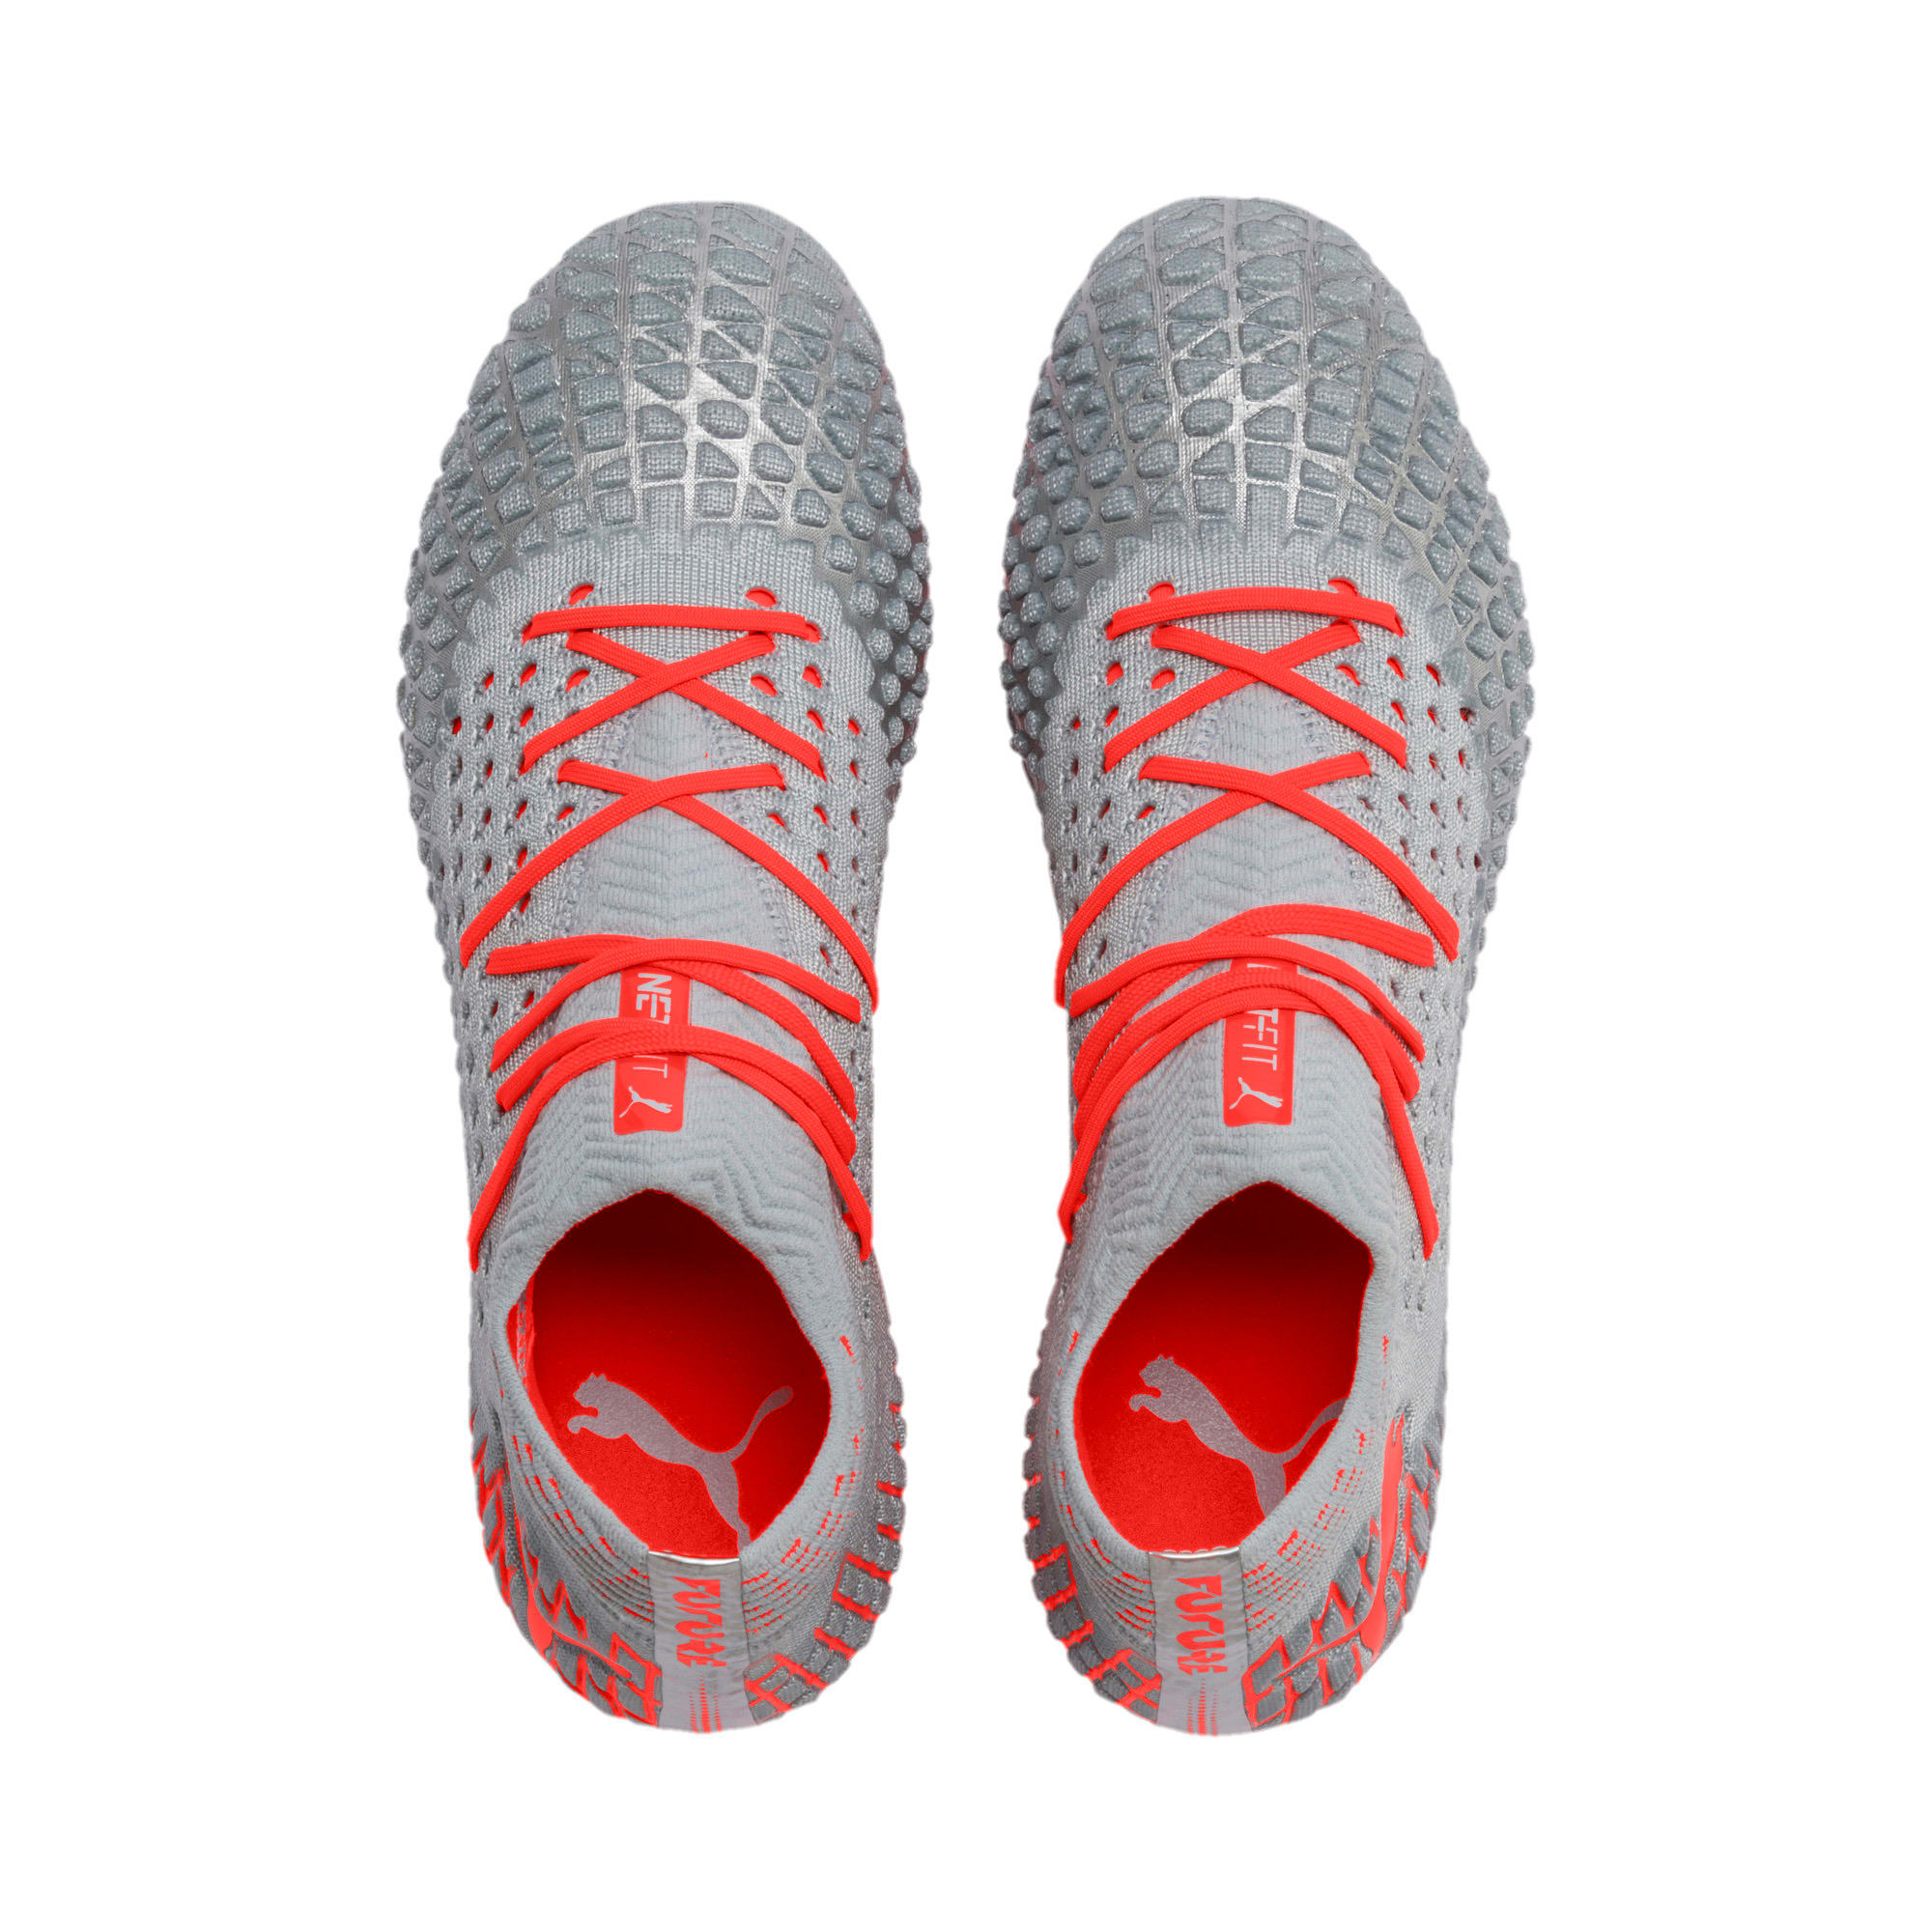 Thumbnail 7 of Chaussure de foot FUTURE 4.1 MxSG, Blue-Nrgy Red-High Risk Red, medium